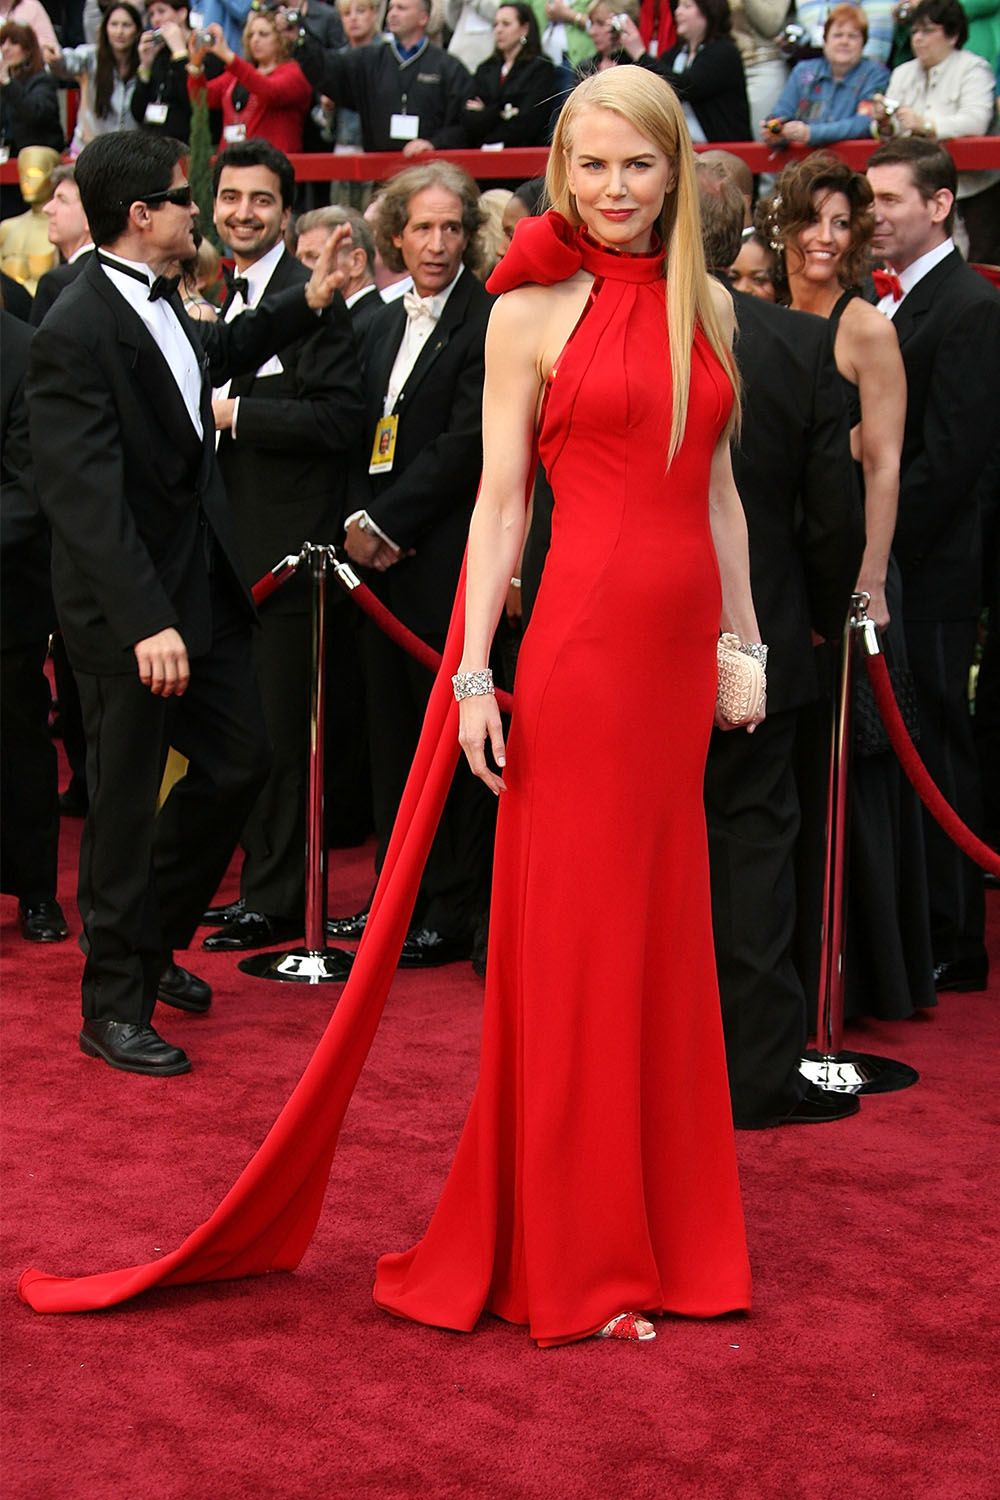 Best red carpet dresses - 50 Best Oscar Dresses Of All Time Best Red Carpet Dresses From The Academy Awards